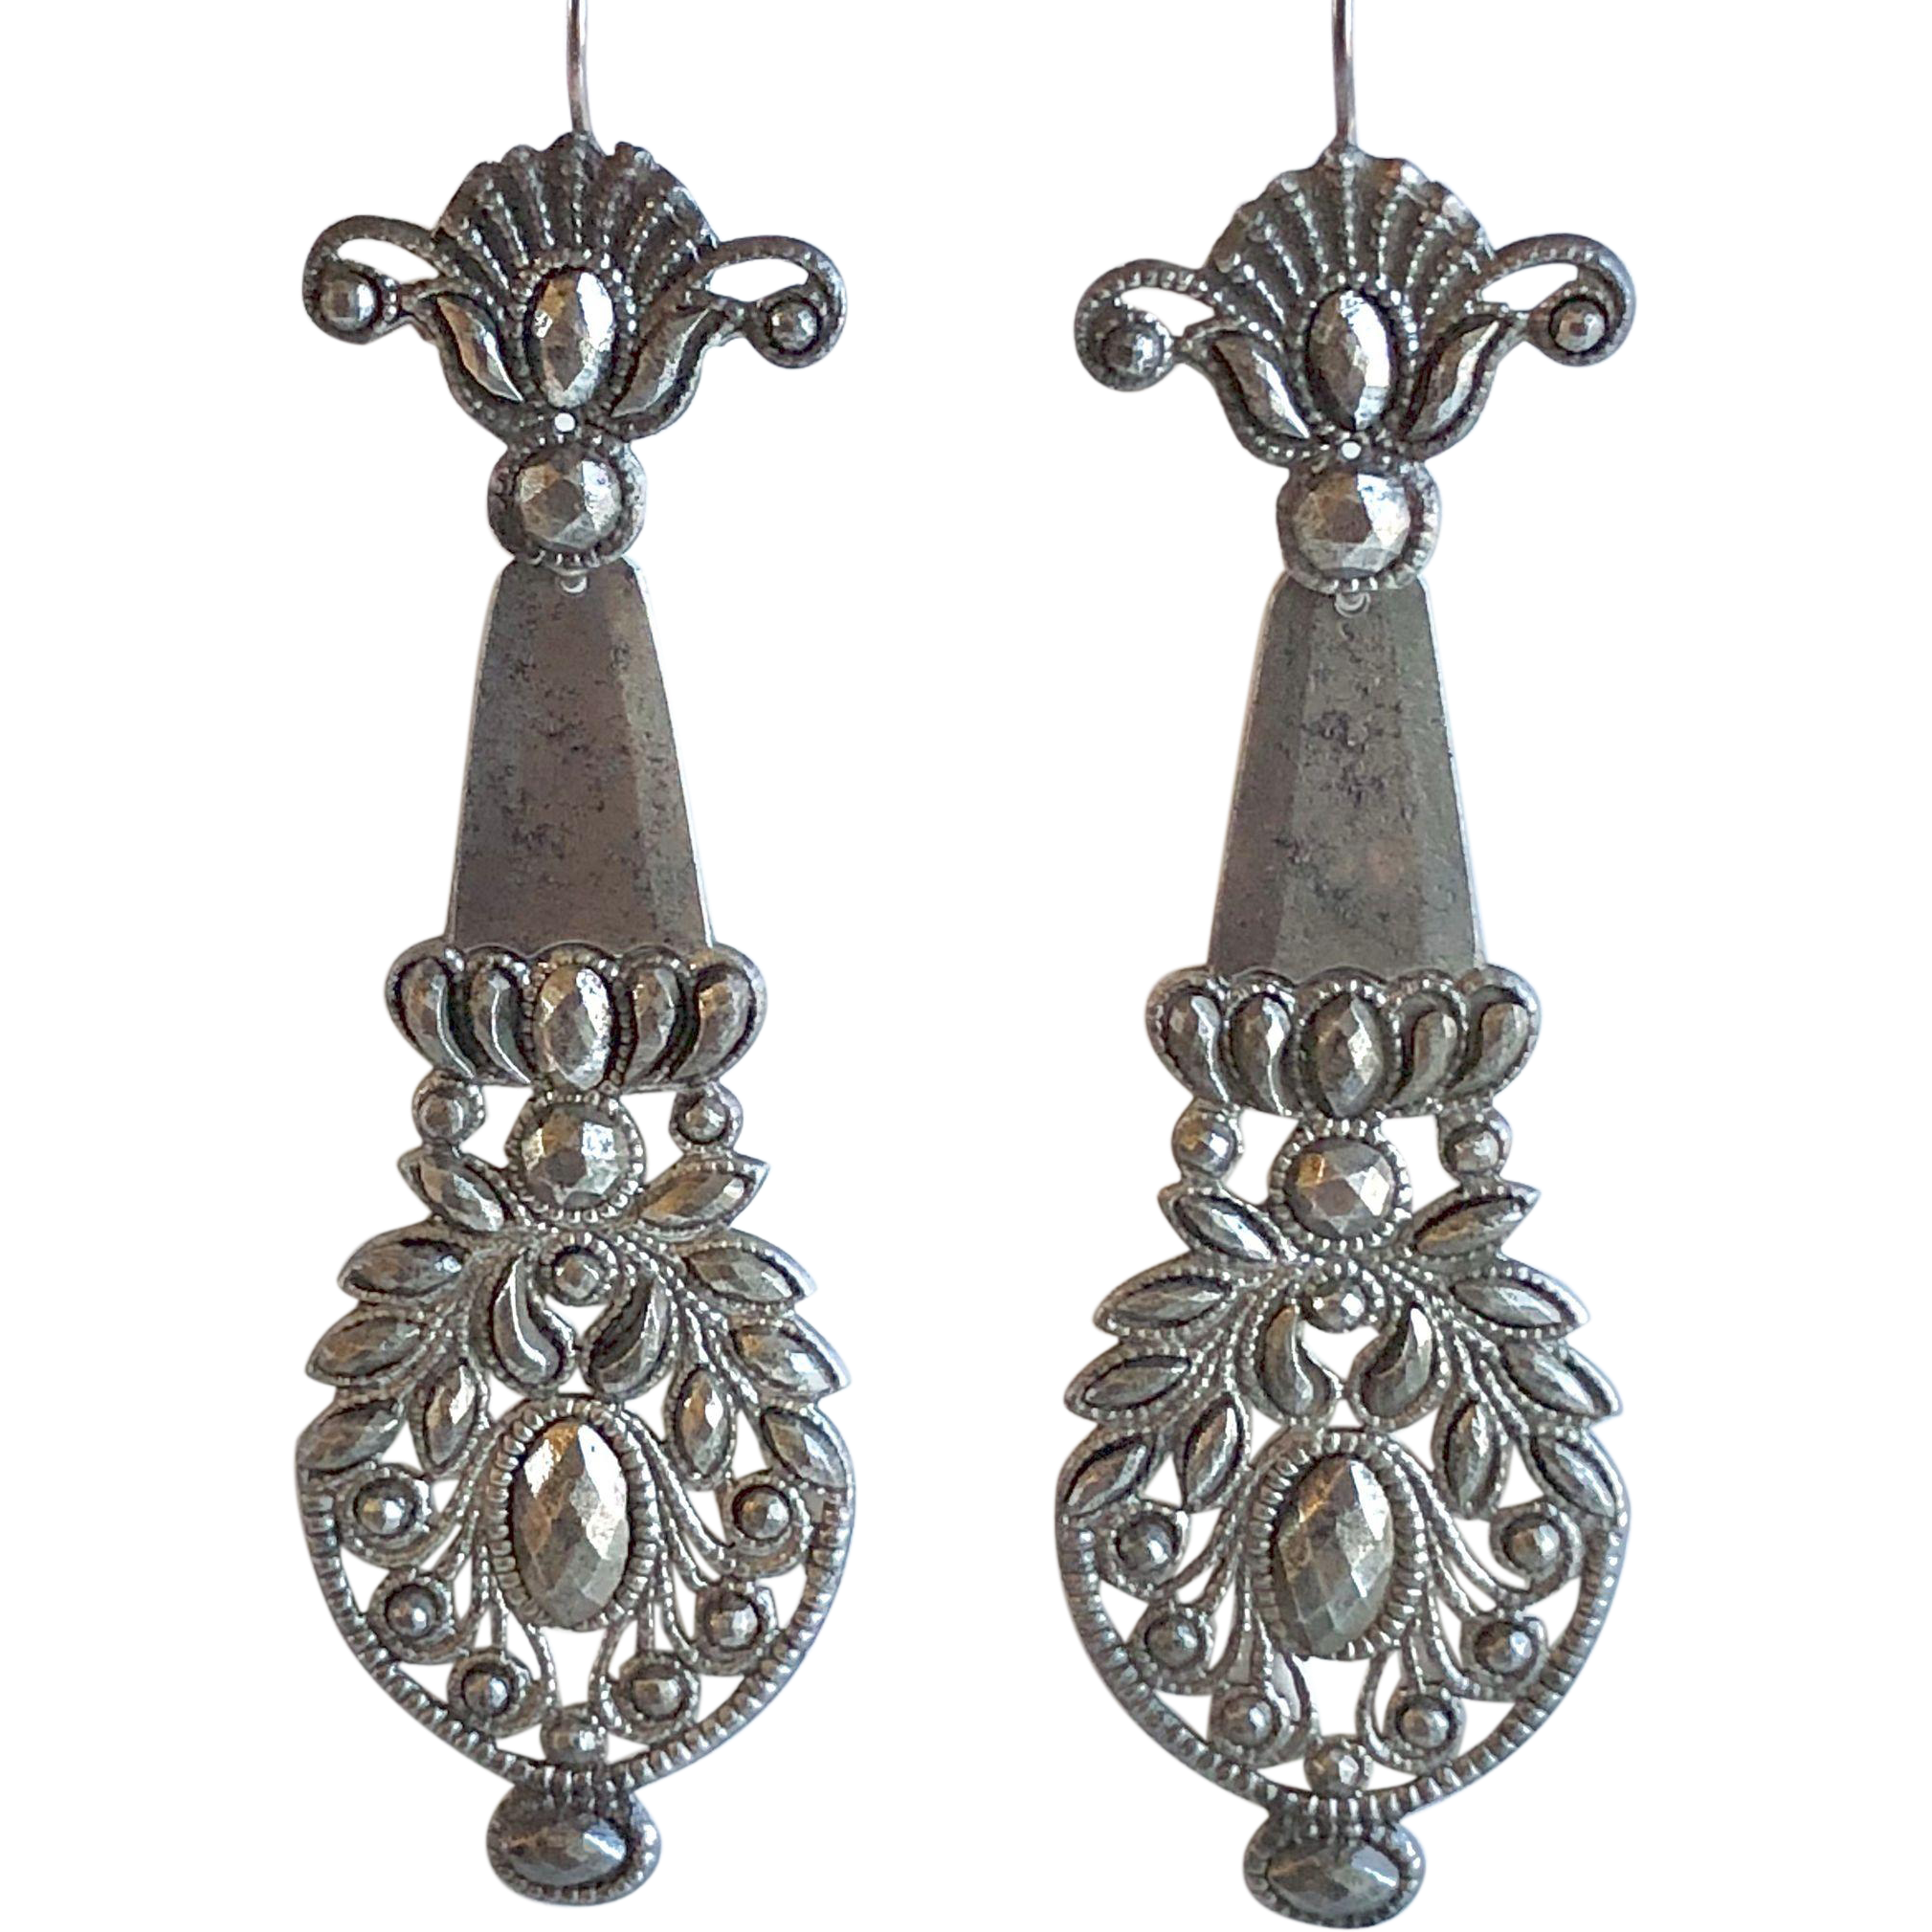 Rare and Dramatic Georgian Cut Steel Earrings